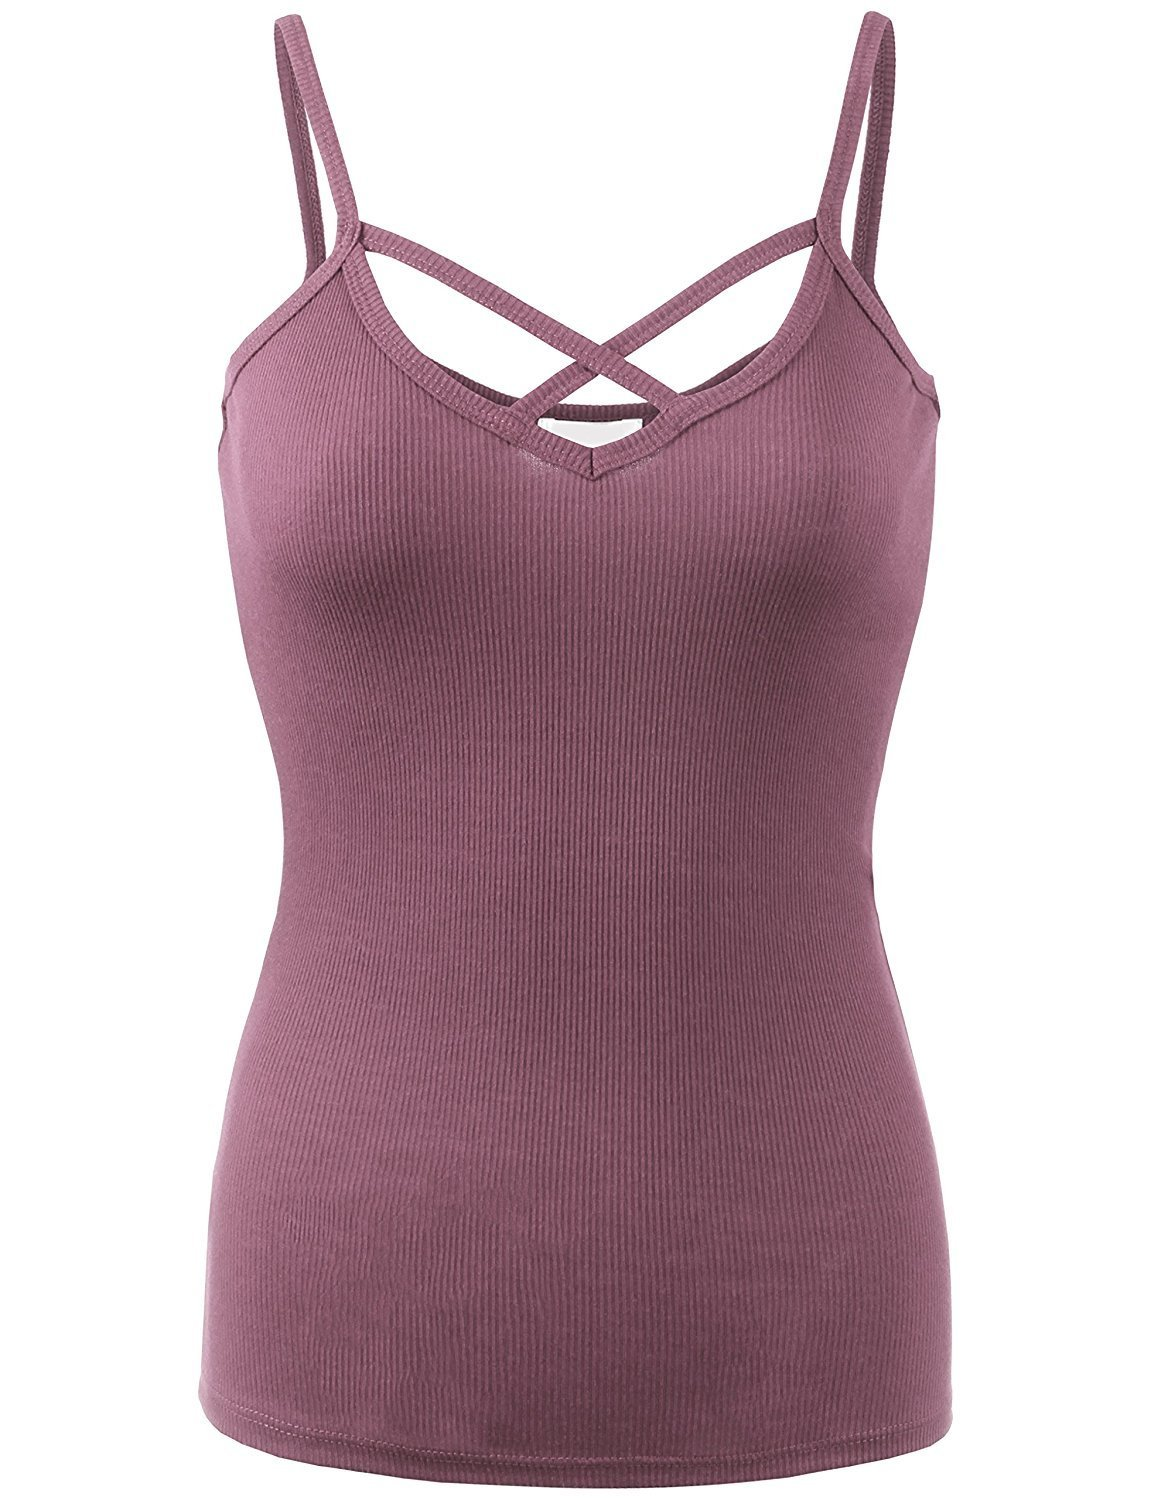 BABY-QQ Comfortable Womens Solid Ribbed Crisscross Cami Top-M-DUSTY_ORCHID Doubldowt469_dusty_orchidMedium